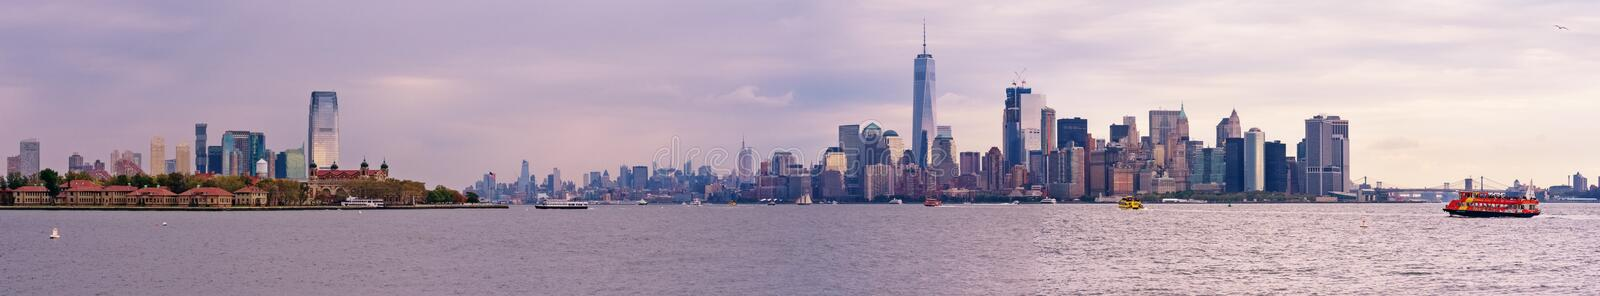 Manhattan skyline panorama, New York City stock images